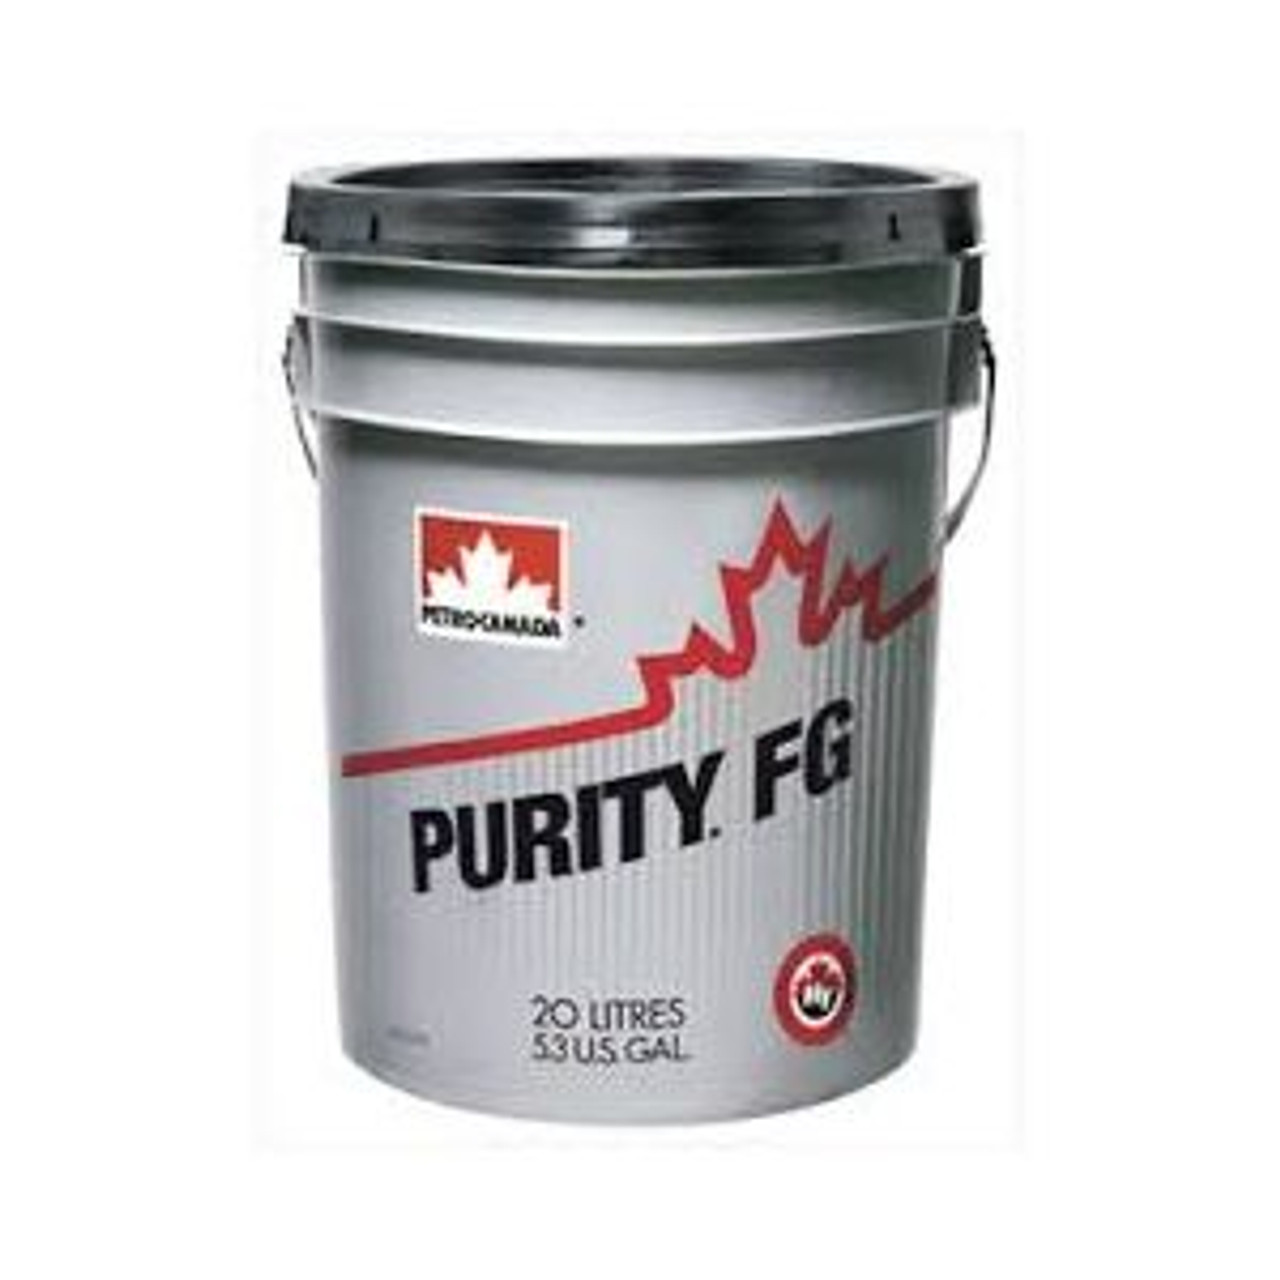 Petro-Canada Purity™ FG Extreme FM Grease #2